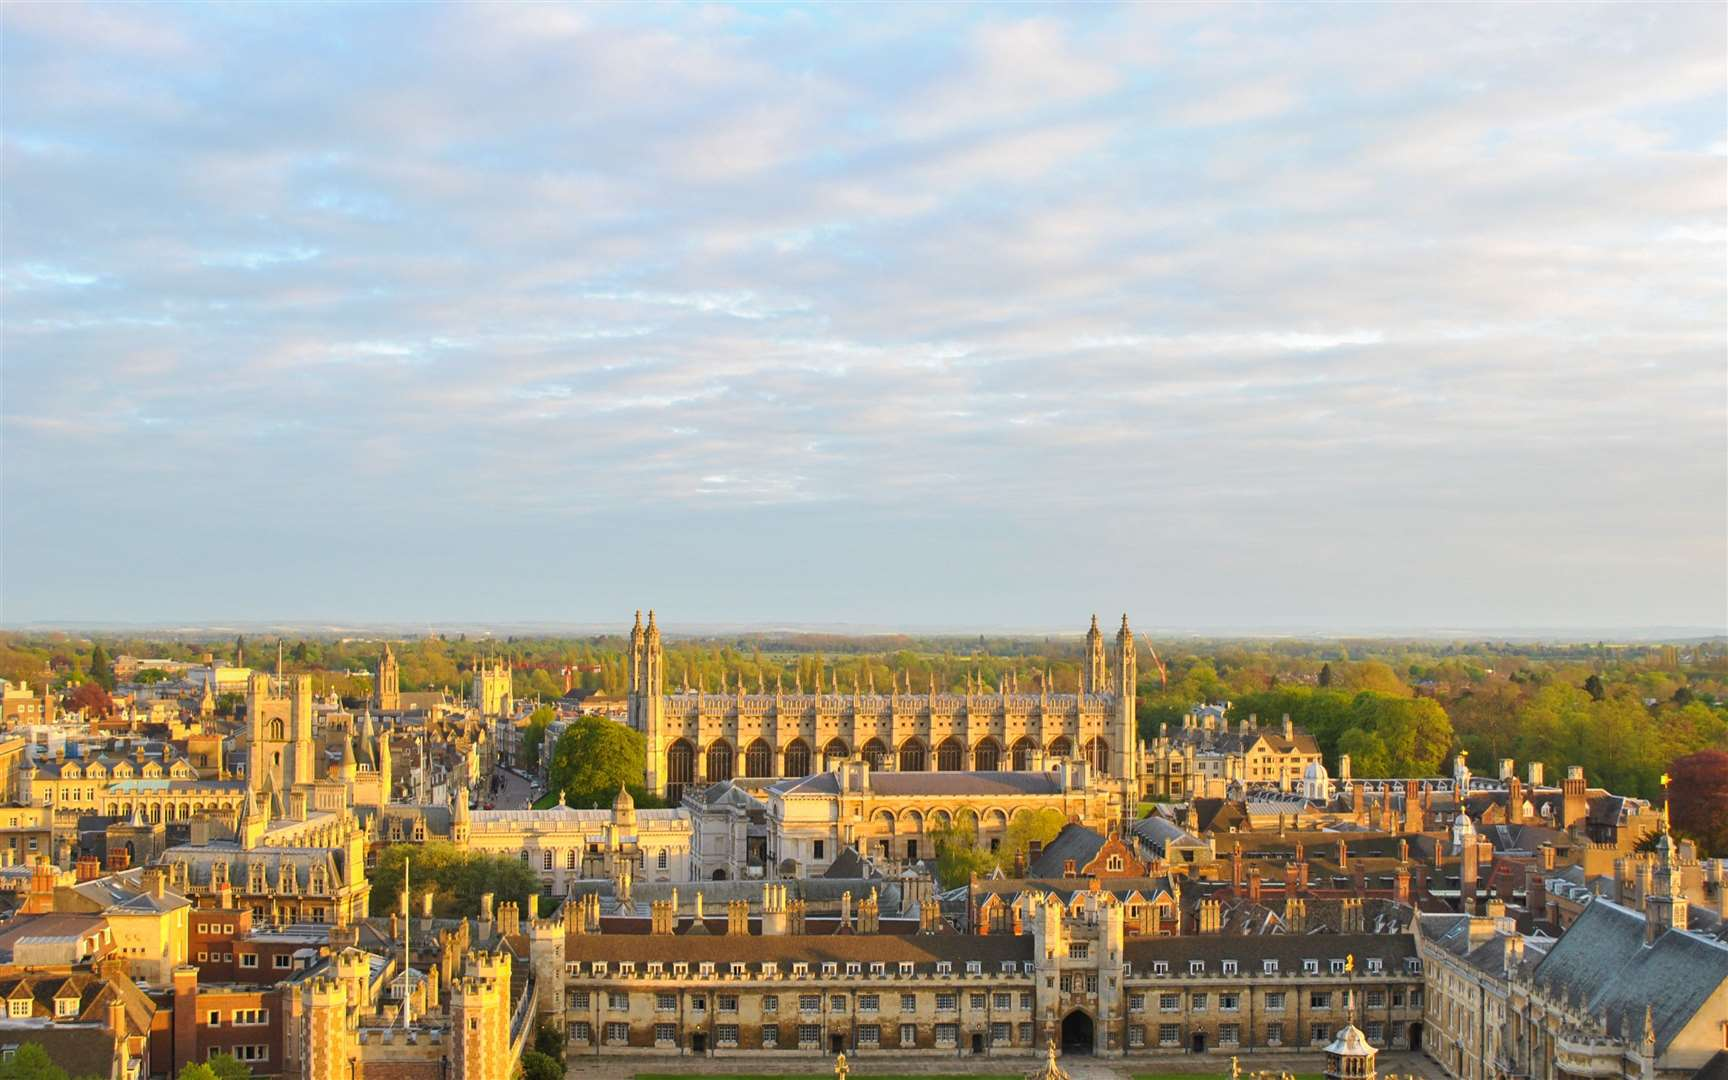 Panoramic view of several college buildings in Cambridge, seen from the tower of St John's College. (28413676)